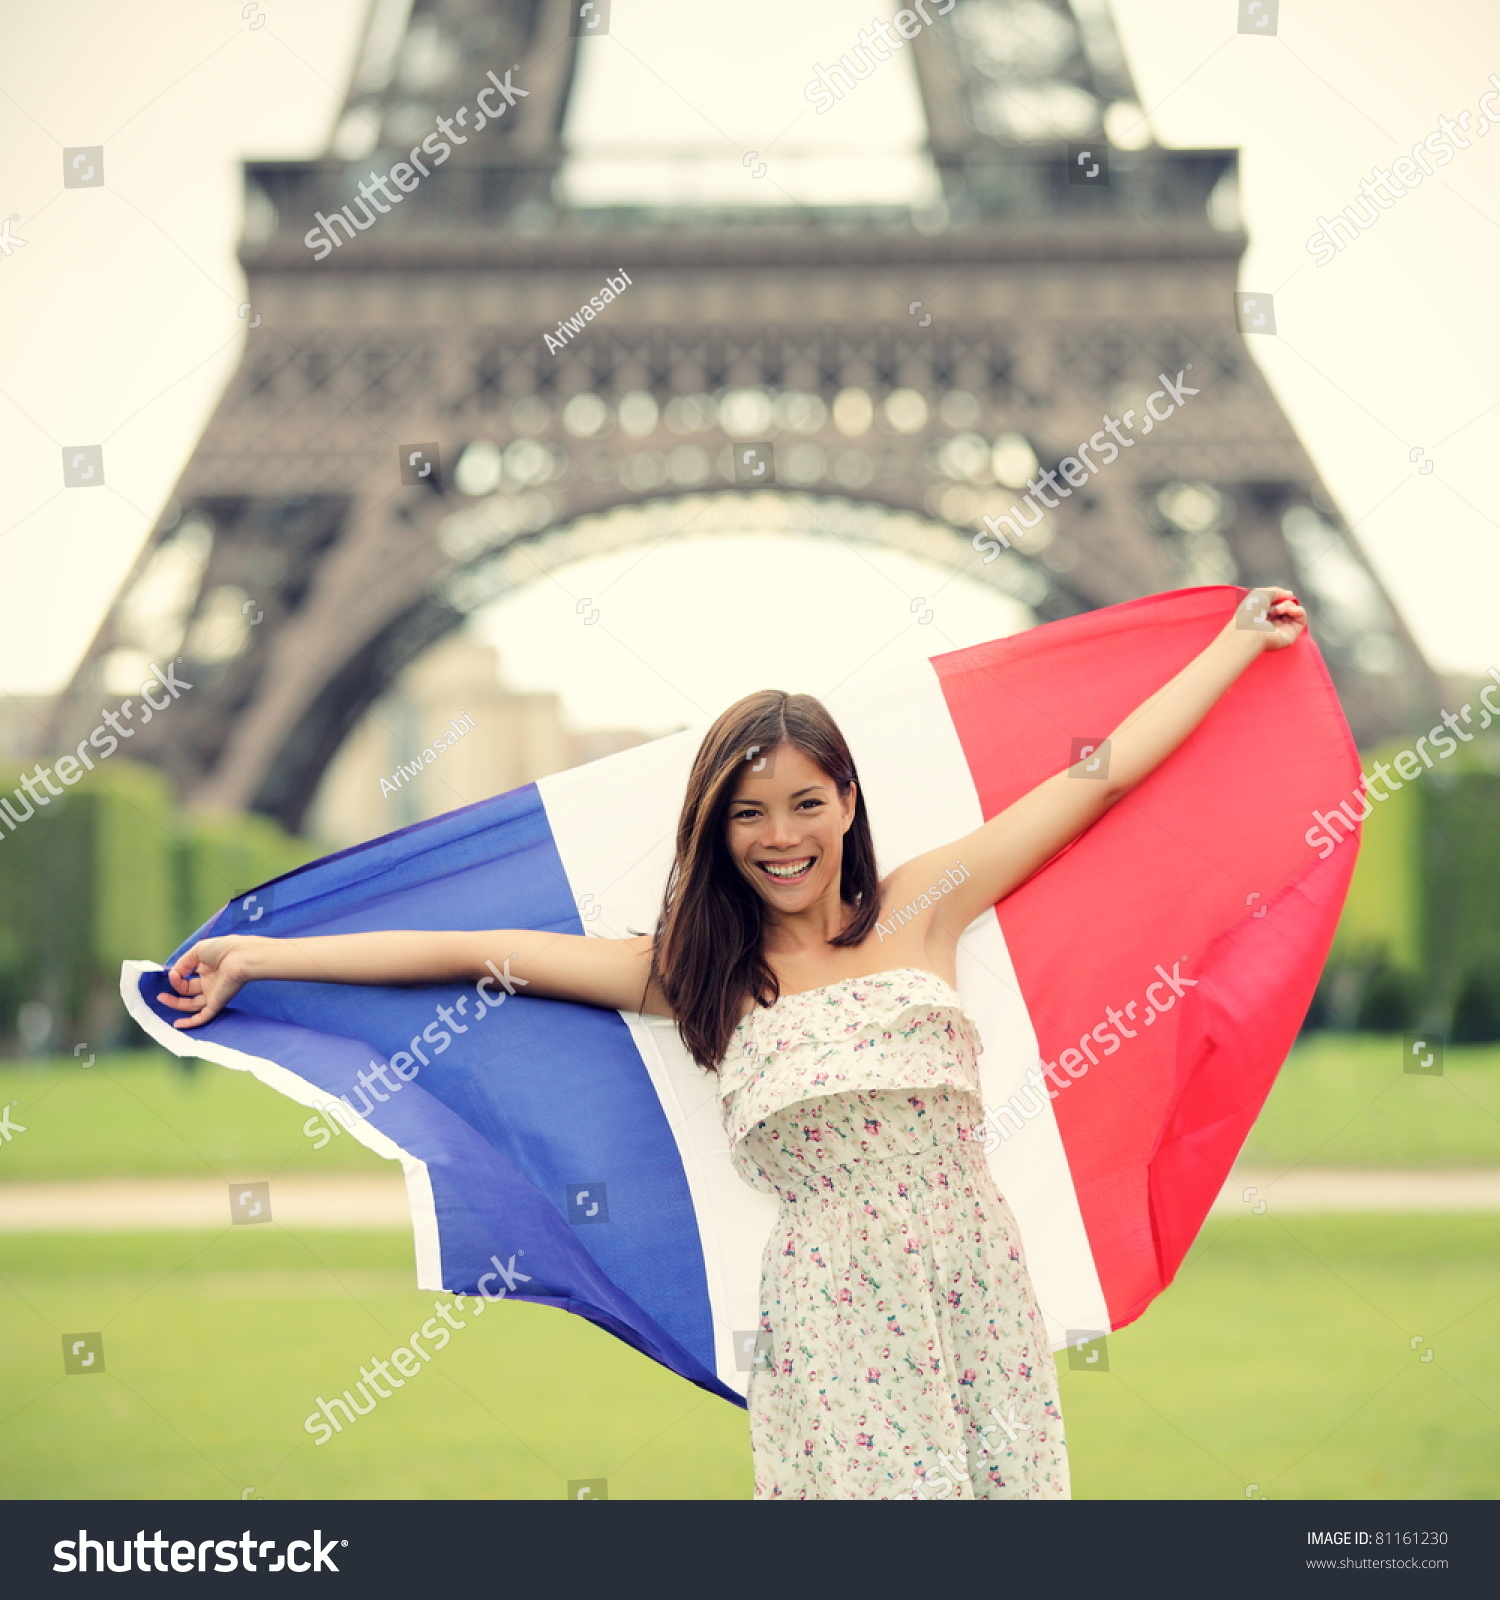 Paris Main Attractions In One Day: Paris Woman Holding French Flag By The Eiffel Tower In